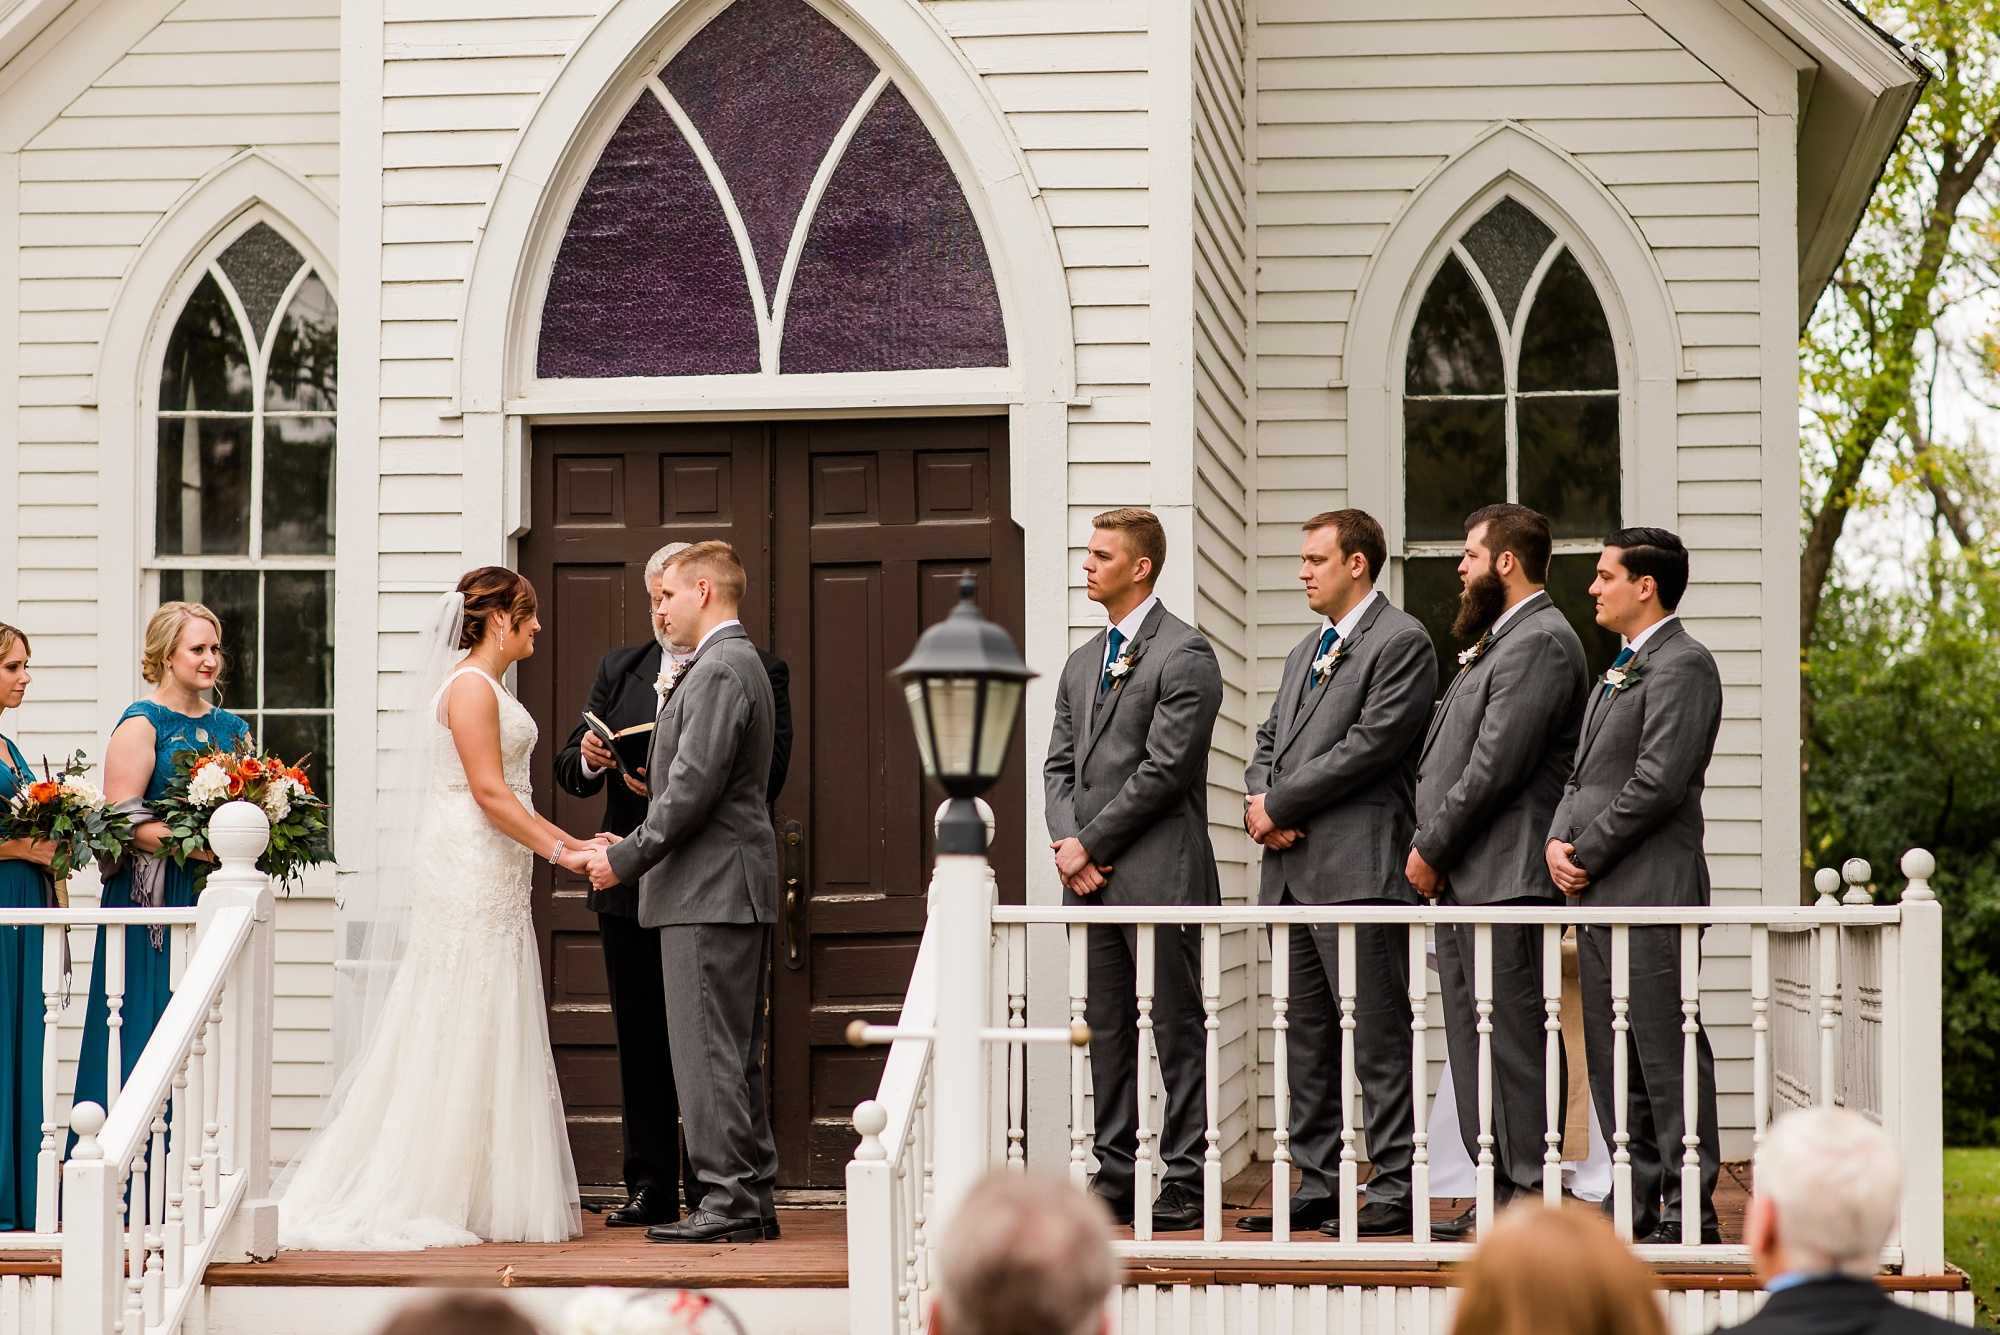 Amber Langerud Photography_Moohread, Outdoor, Barn Wedding at A Friends House_7105.jpg